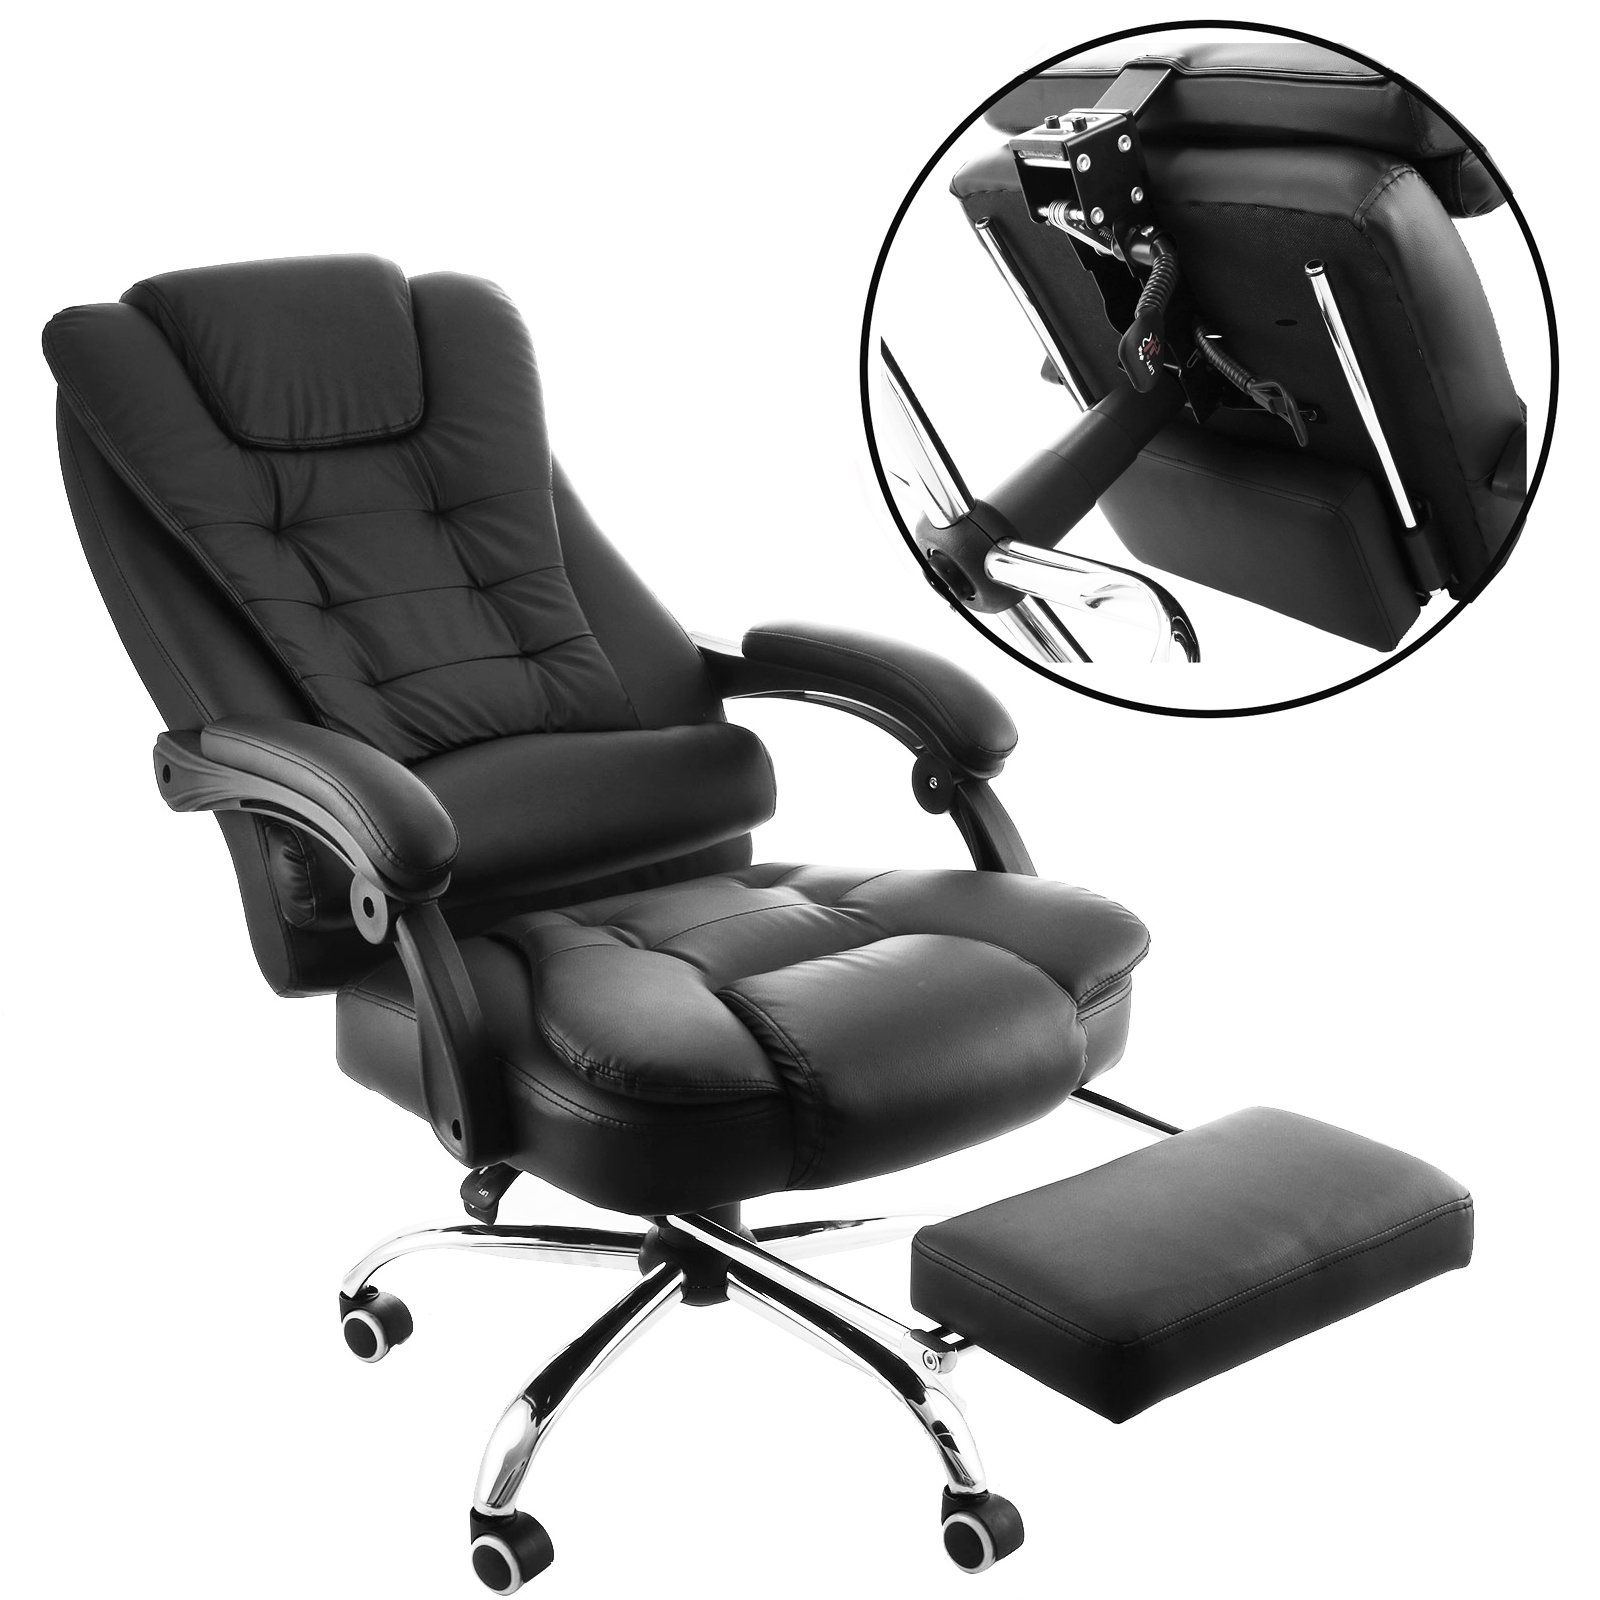 mag size leather chairs office computer full world with seat design heavy footrest people furniture recliner of for things sofa back high chair and home heated reclining liquidators